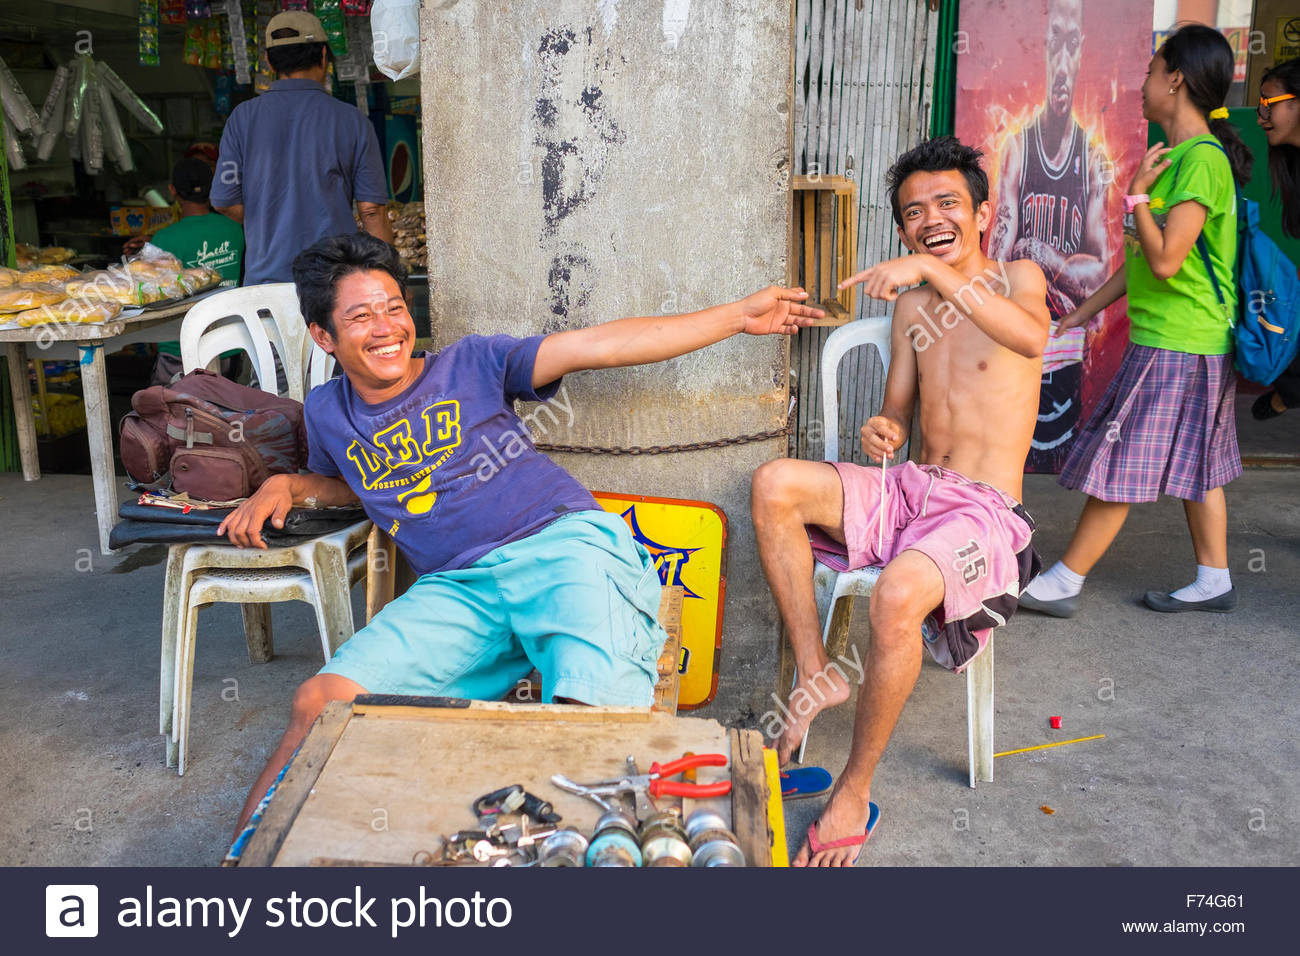 Two young Filipino men laughing and pointing at each other, Central Market, Iloilo City, Western Visayas, Philippines - Stock Image